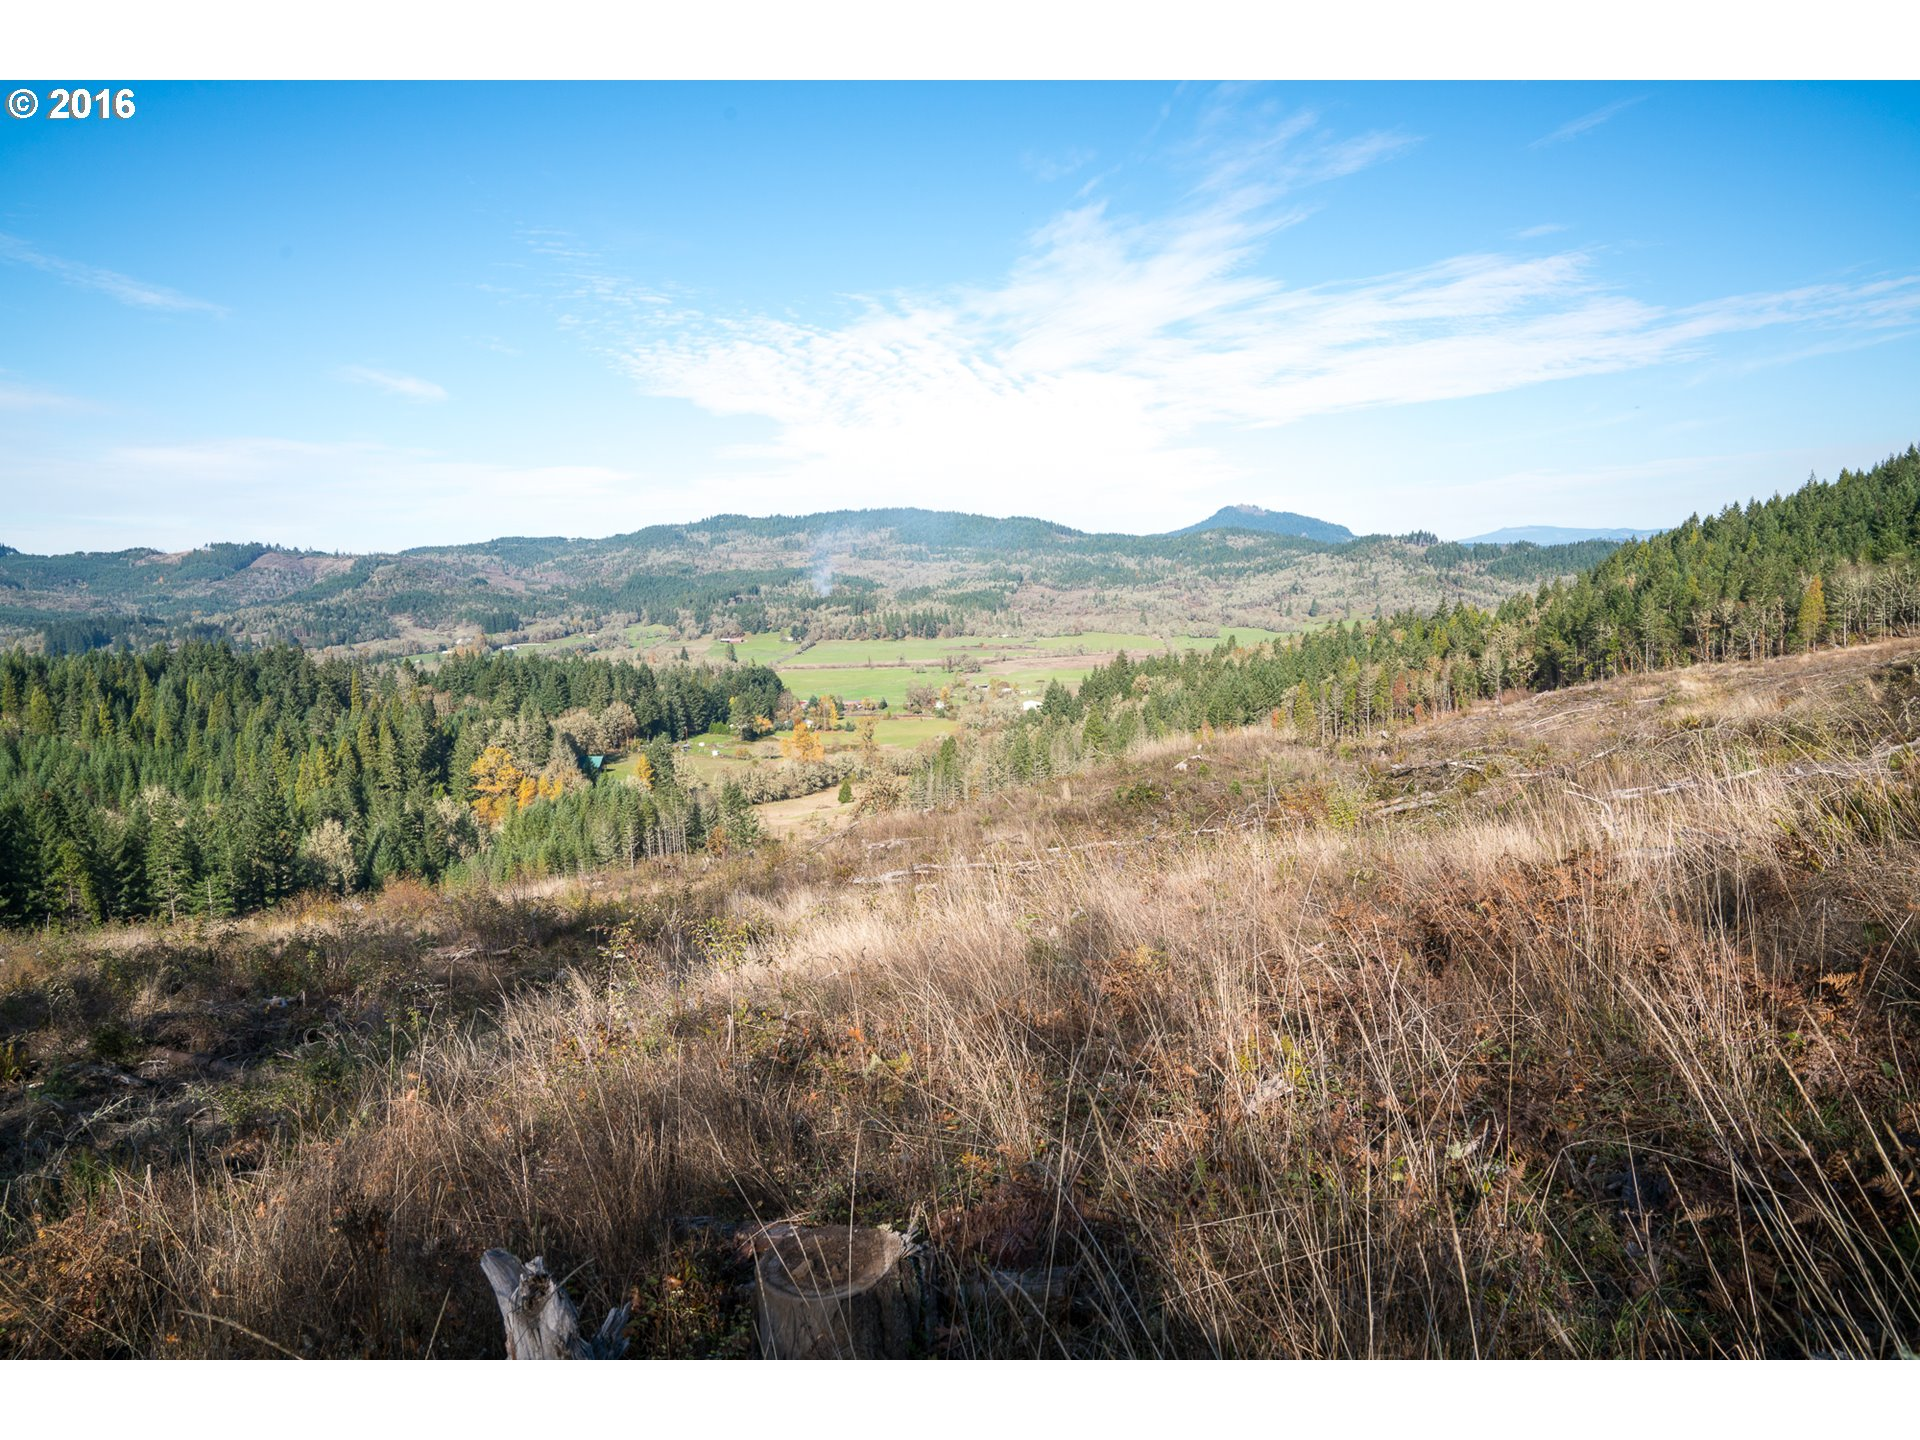 Camas Swale RD 44.53, Creswell, OR 97426